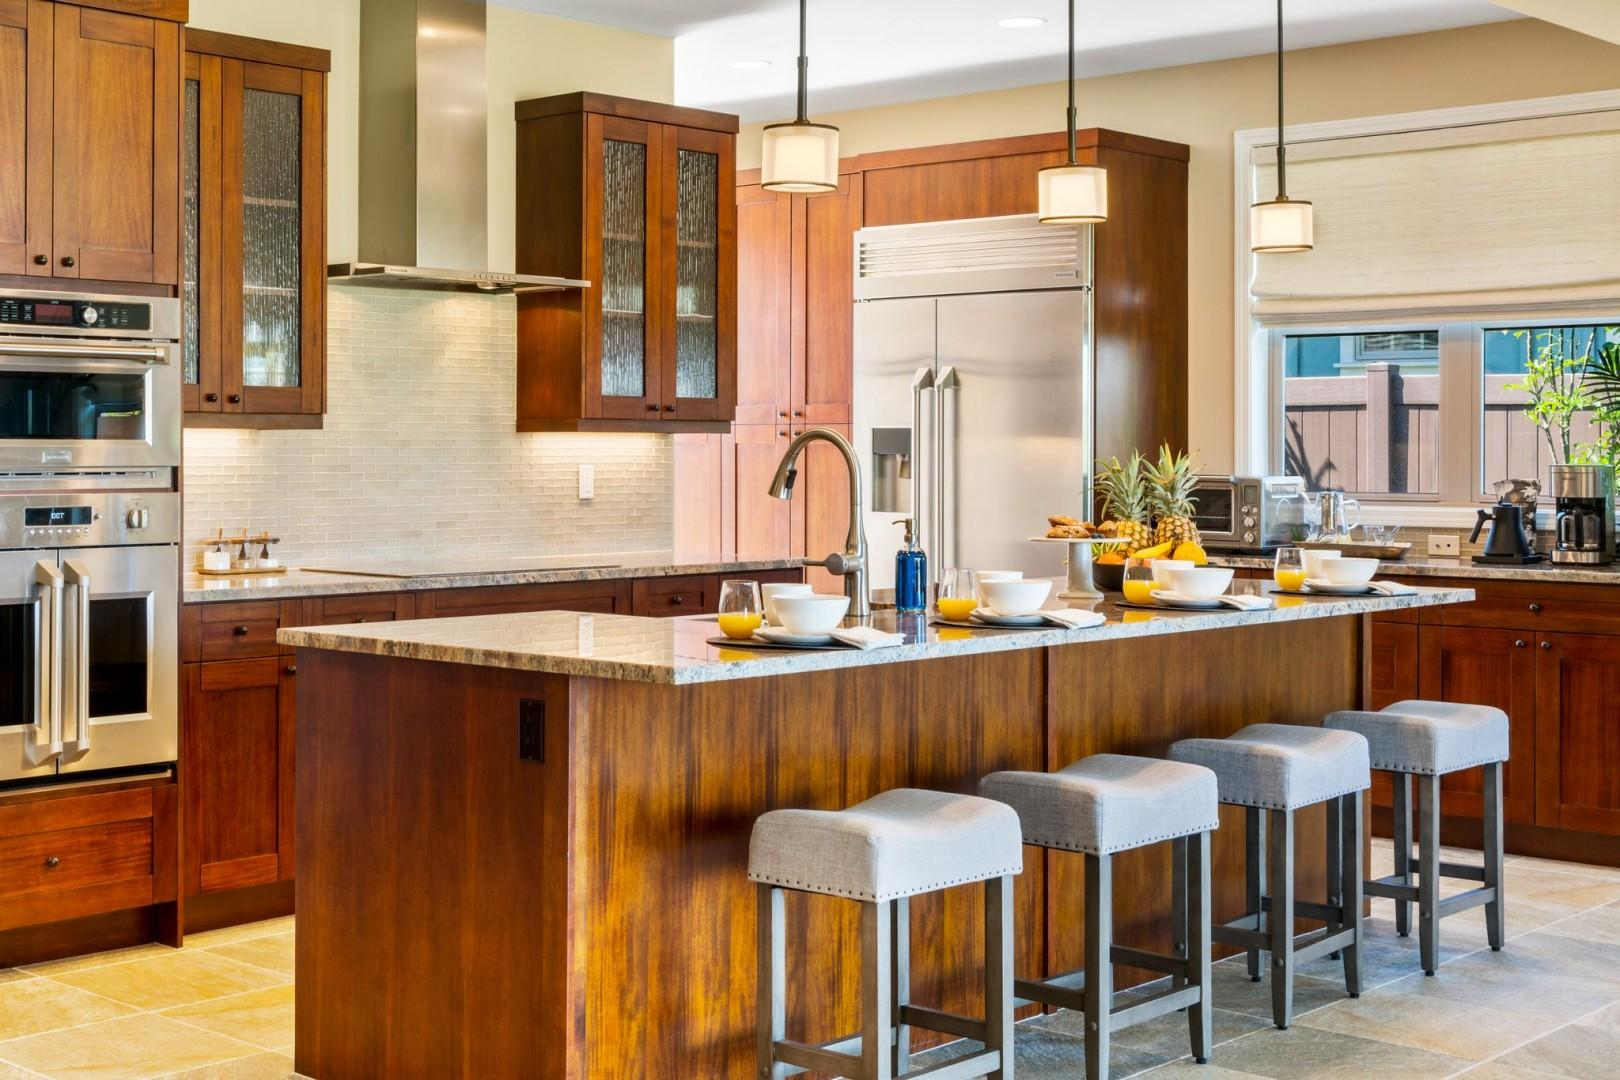 Embrace the chefs kitchen where all your needs will be met